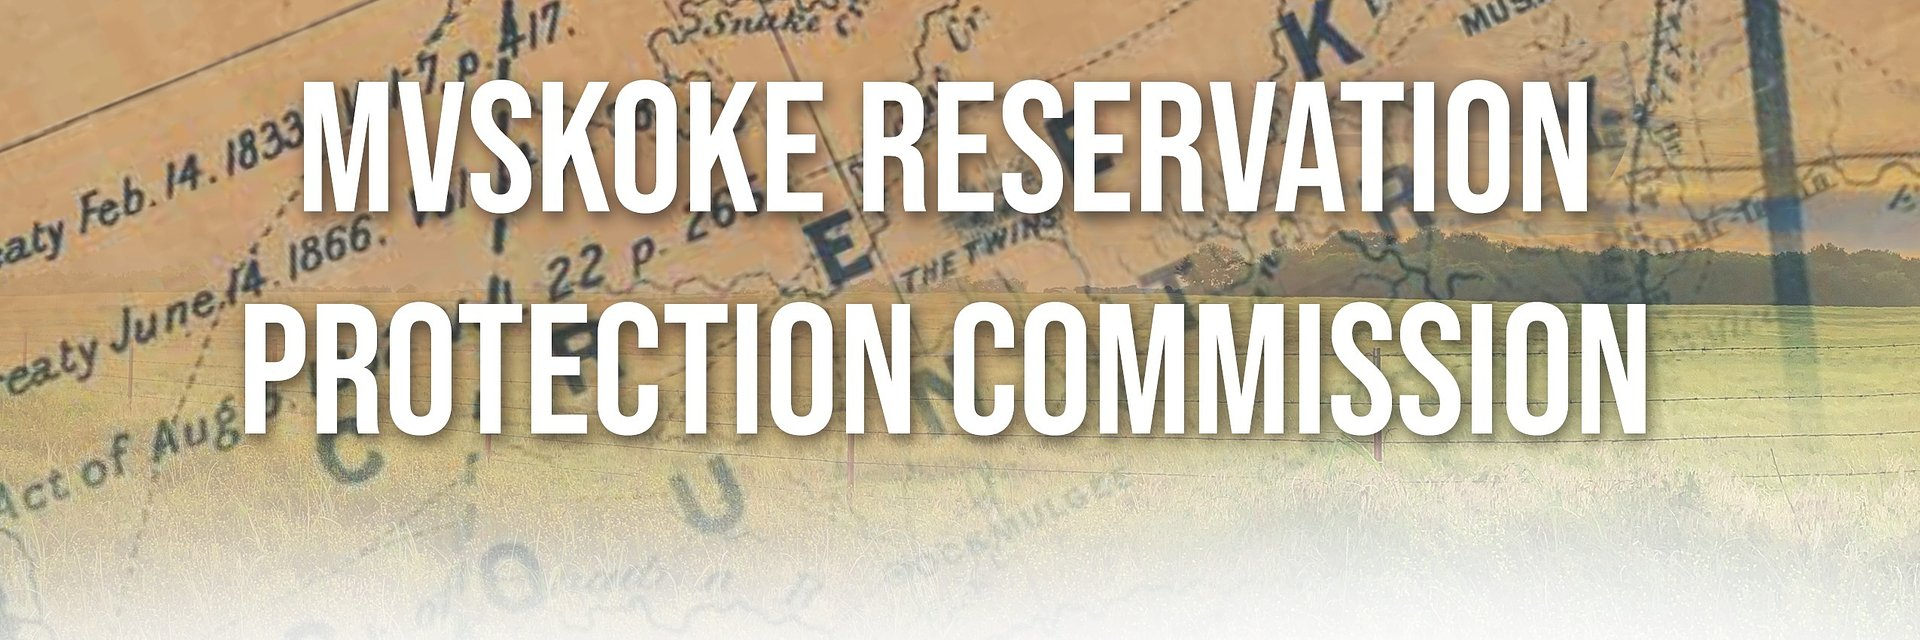 Muscogee (Creek) Nation Announces Appointments to Mvskoke Reservation Protection Commission